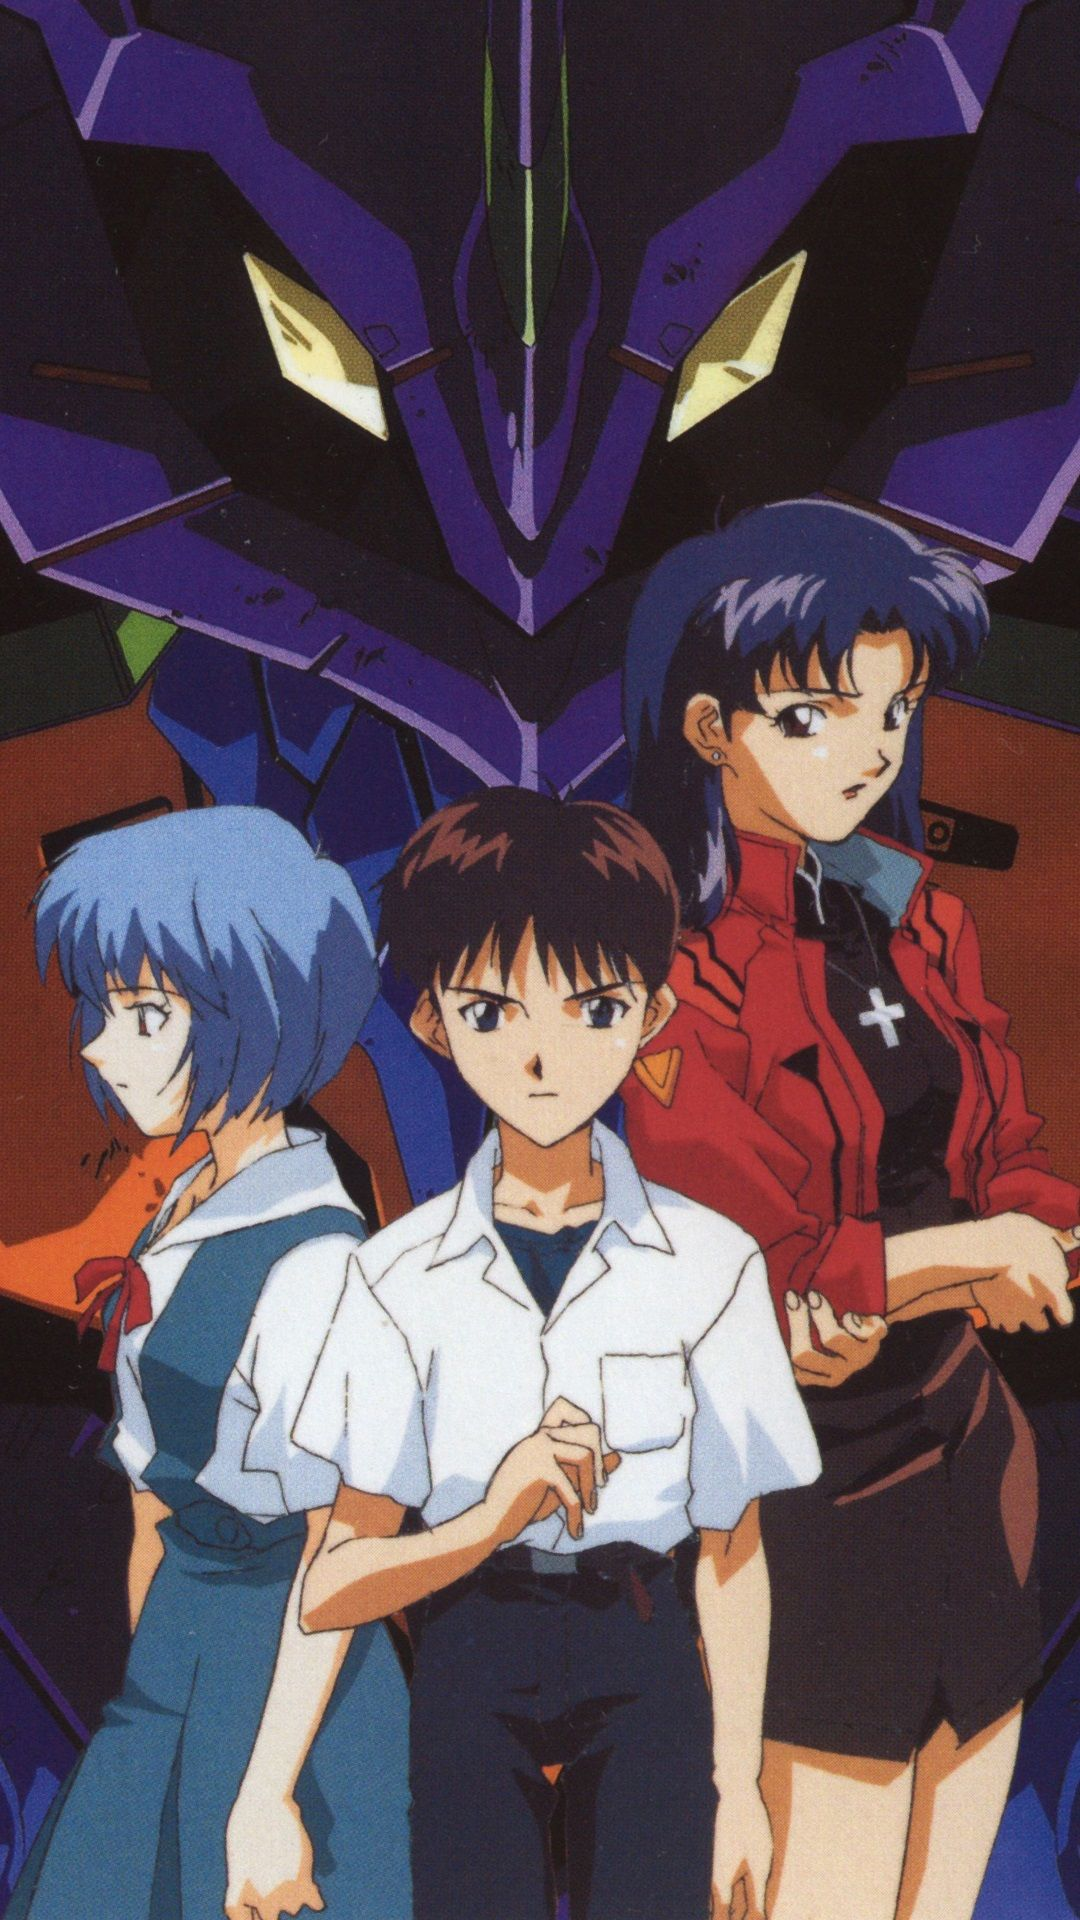 Neon Genesis Evangelion Iphone Wallpapers Top Free Neon Genesis Evangelion Iphone Backgrounds Wallpaperaccess